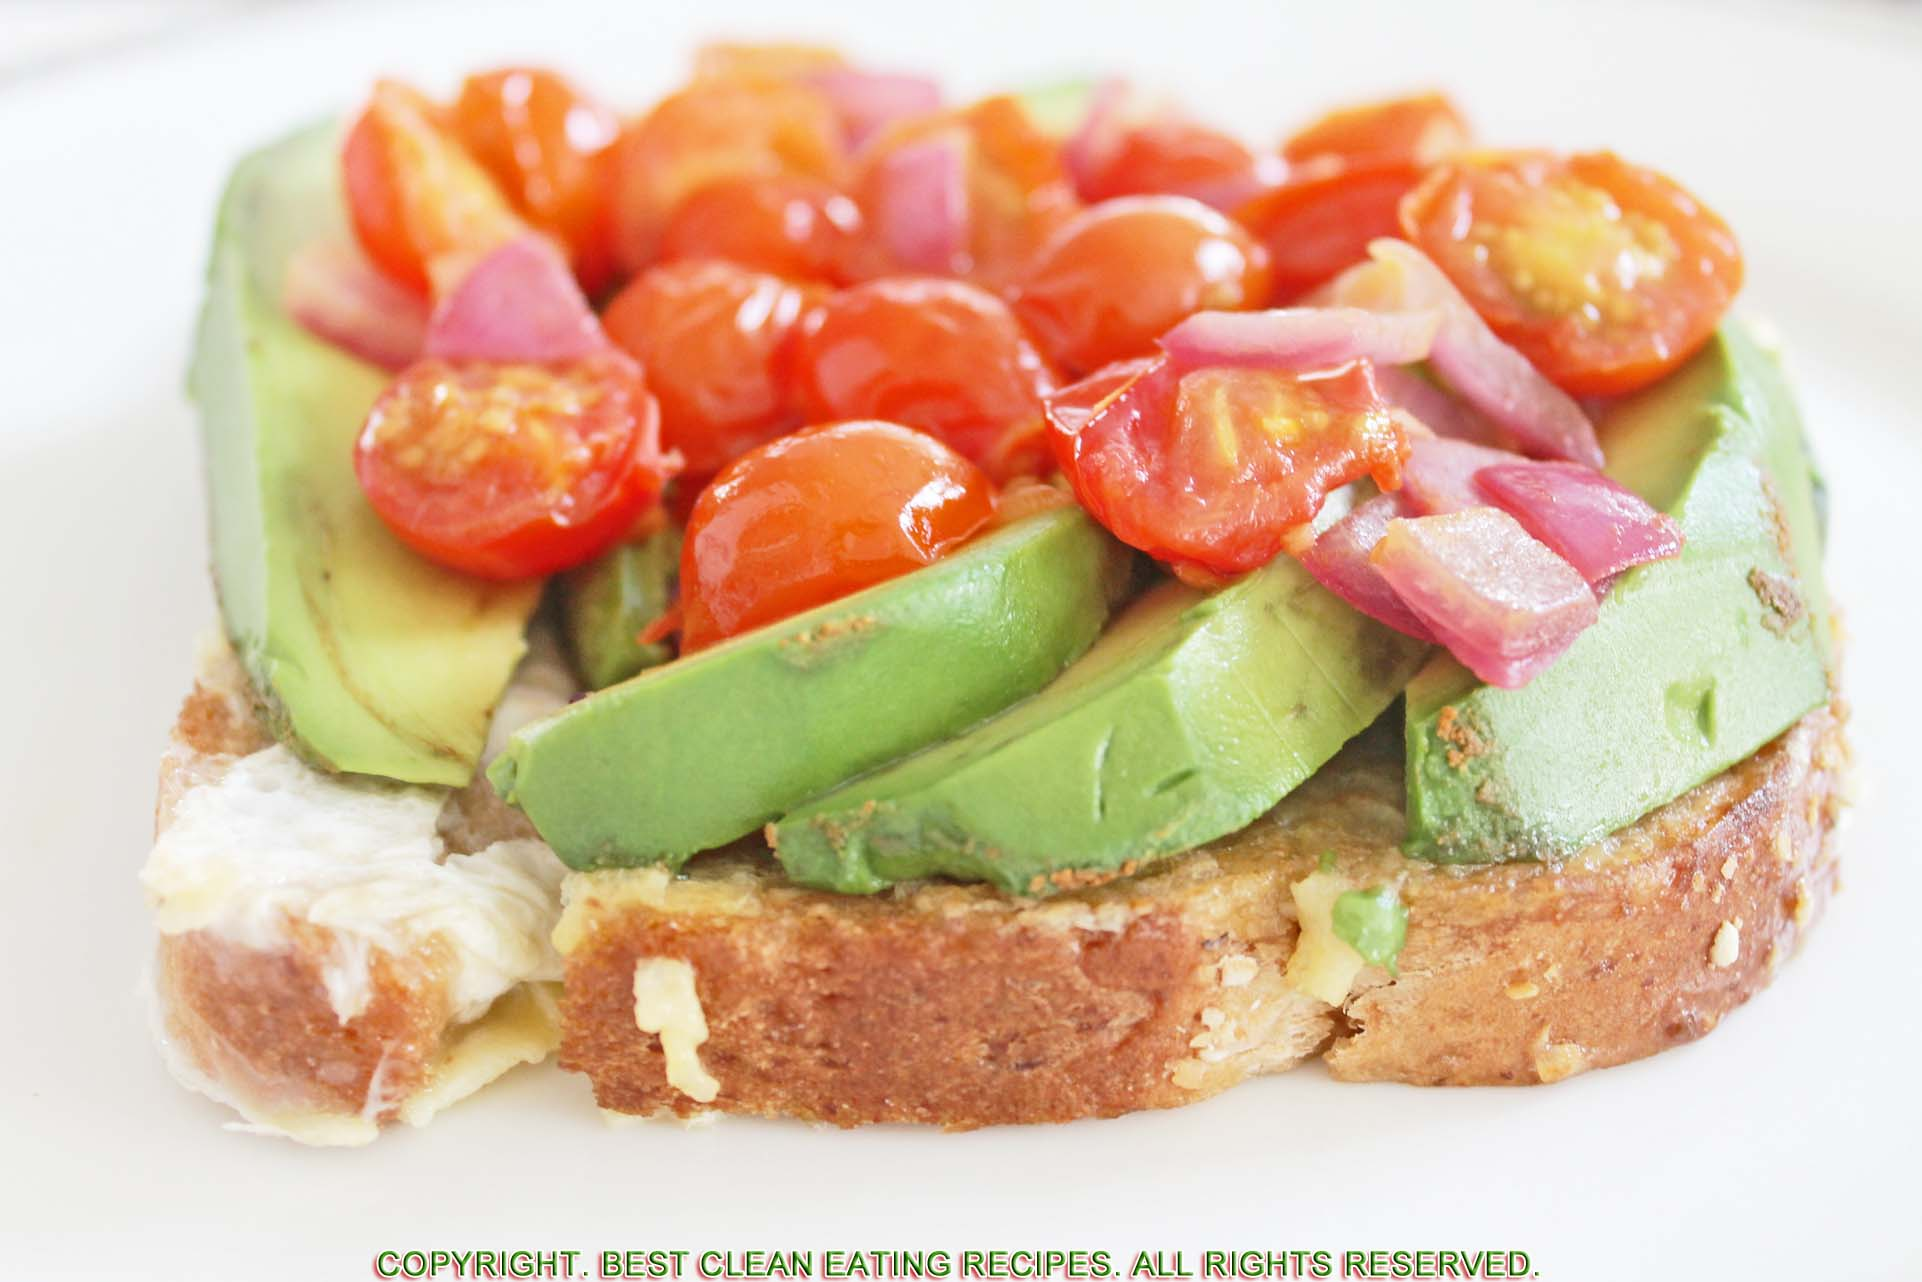 VEGGIE-TOPPED FRENCH TOAST